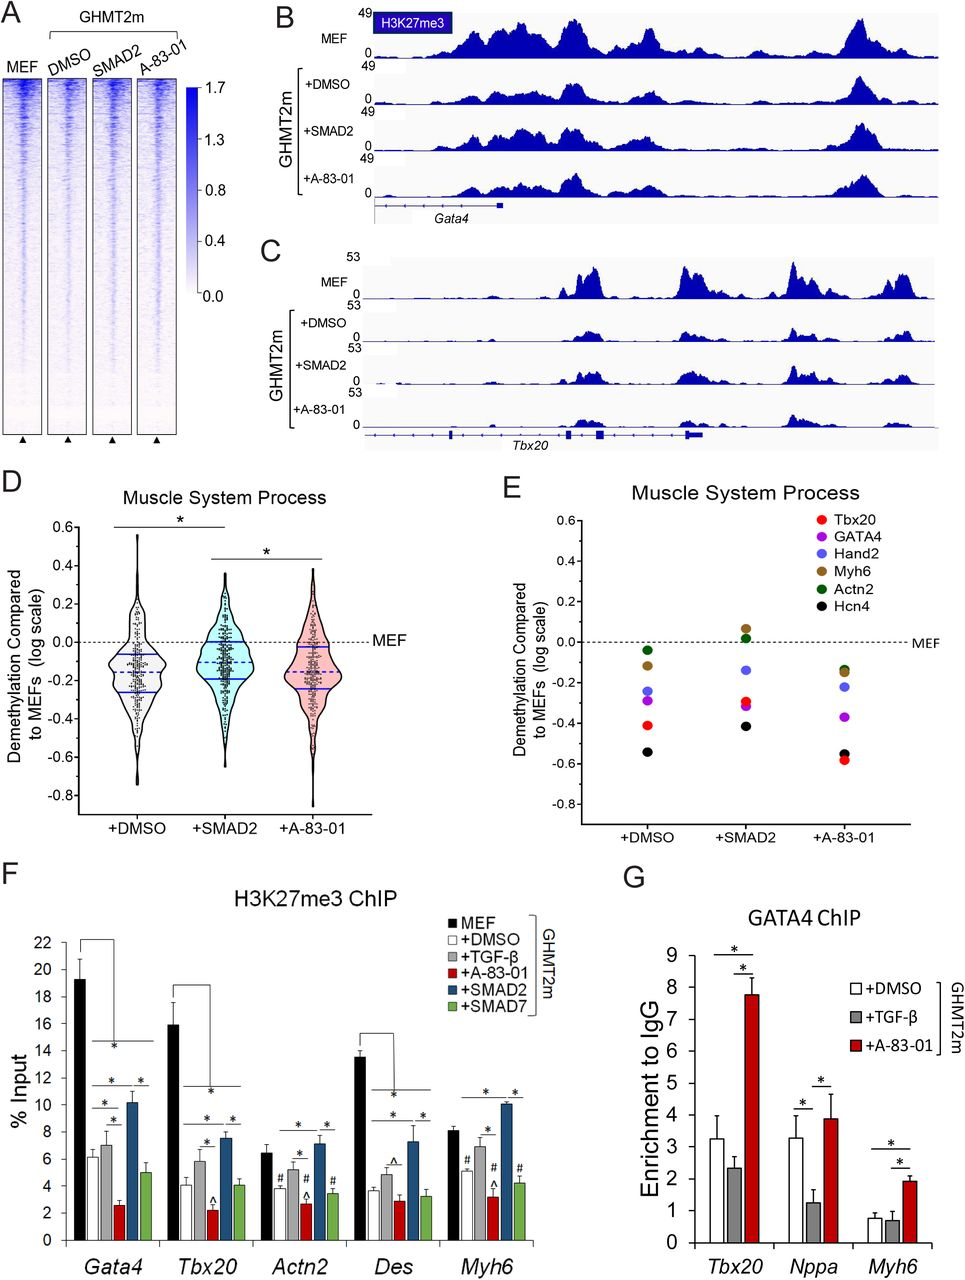 <t>TGF-β</t> signaling impairs demethylation of H3K27me3 and recruitment of GATA4 to target genes A) Global ChIP-seq density heatmap of H3K27me3 in Day 7 GHMT2m-reprogrammed cells with indicated TGF-β pathway manipulation and undifferentiated MEFs at ± 2kb from annotated transcription start sites (TSS). B and C) Representative IGV tracks depicting H3K27me3 intensity at Gata4 (B) and Tbx20 (C) promoters from Day 7 GHMT2m-reprogrammed cells with indicated TGF-β pathway manipulation and undifferentiated MEFs. D and E) Logarithmic transformation of H3K27me3 levels in relation to undifferentiated MEFs at ± 2kb from the annotated TSS of genes within the Muscle System Process Gene Ontology pathway (GO:0003012) that were also upregulated > 2 fold in GHMT2m + A-83-01 reprogrammed cells compared to undifferentiated MEFs as identified by RNA-seq (D) and at candidate cardiac genes selected from GO:0003012 (E). F) H3K27me3 levels at cardiac gene promoters Gata4, Tbx20, Actn2, Des, and Myh6 from Day 7 GHMT2m-reprogrammed cells co-infected with GFP, SMAD2, or SMAD7 or treated with <t>DMSO,</t> 5 ng/mL TGF-β1, or 0.5 µM A-83-01 analyzed by ChIP-qPCR. Undifferentiated MEFs served as a positive control for H3K27me3 levels. Data are presented as percentage of input. N=4 for MEFs, N=6 for GHMT2m + GFP + DMSO, N=6 for GHMT2m + GFP + TGF-β1, N=5 for GHMT2m + GFP + A-83-01, N=4 for GHMT2m + SMAD2, and N=5 for GHMT2m + SMAD7. G) GATA4 levels at cardiac gene promoters Nppa, Tbx20, and Myh6 from Day 5 GHMT2m-reprogrammed cells treated with DMSO, 5 ng/mL TGF-β1, or 0.5 µM A-83-01 analyzed by ChIP-qPCR. Data are presented as enrichment to IgG control. N=5 for GHMT2m + DMSO, N=4 for GHMT2m + TGF-β1, N=5 for GHMT2m + A-83-01. All data shown as mean ± SEM. *, # p